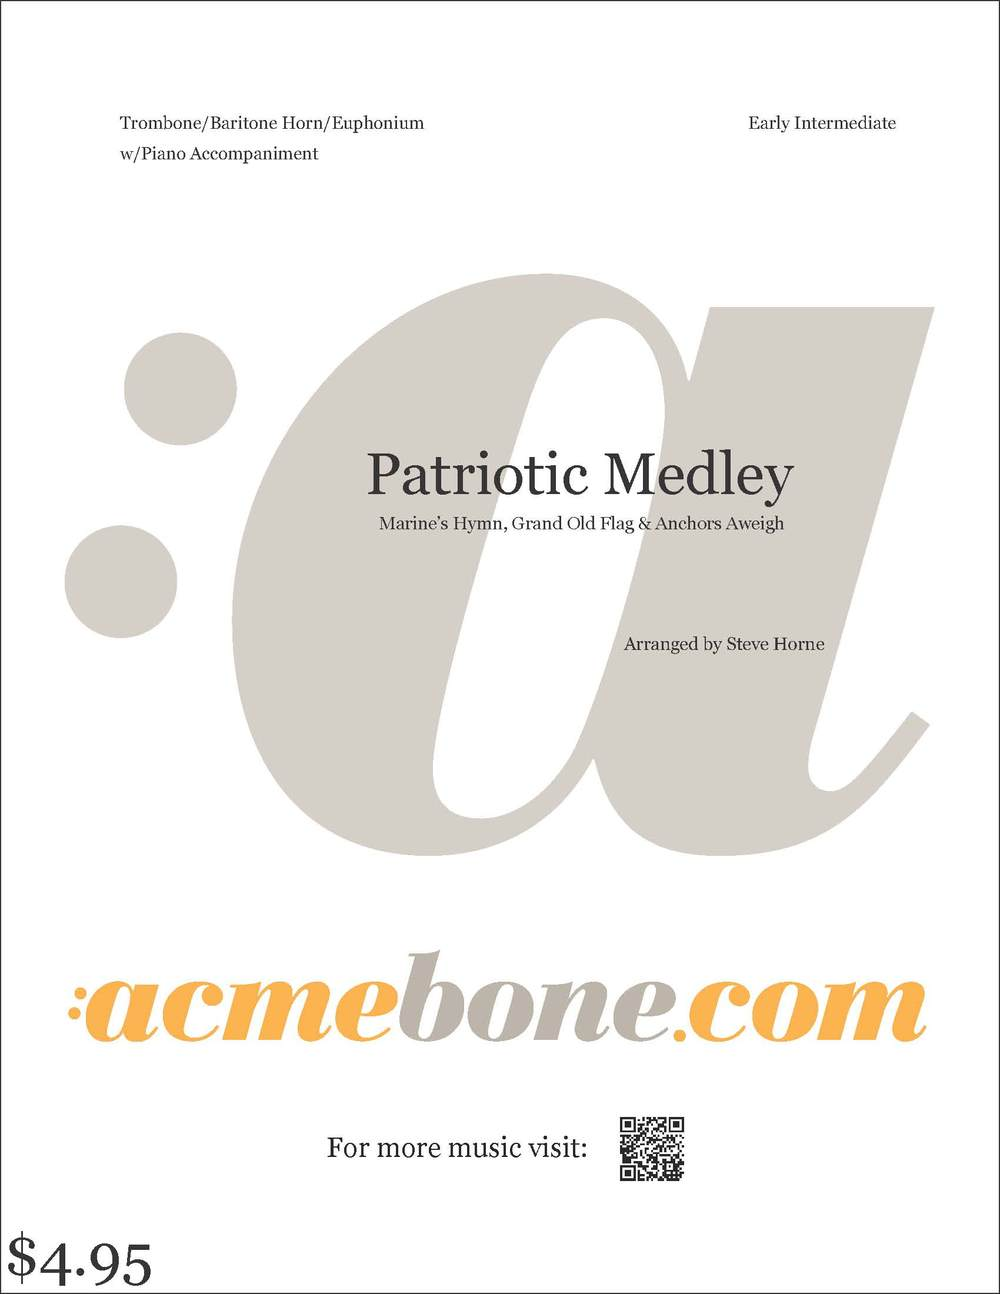 Patriotic Medley_digital_cover_w-bo_price.jpg